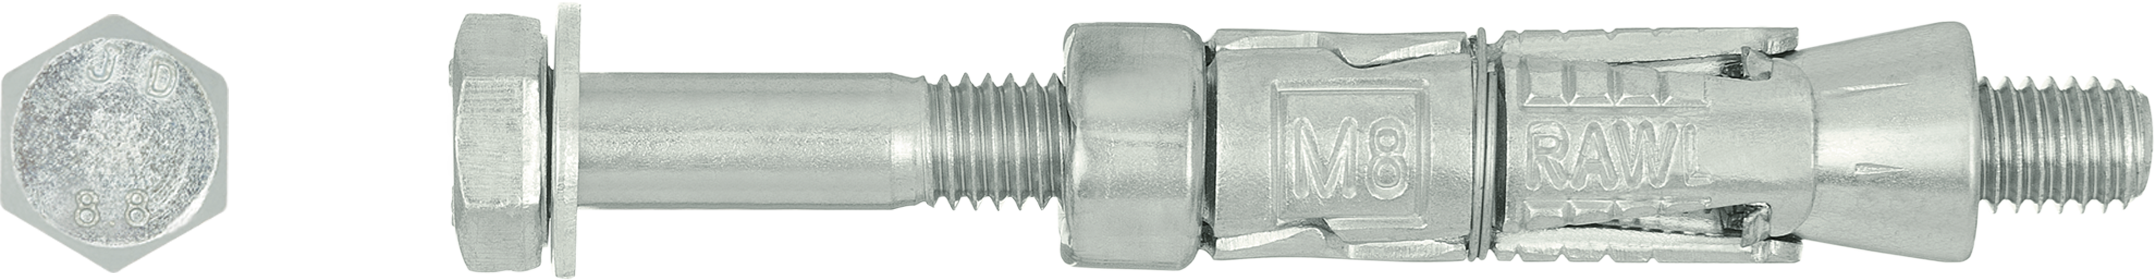 R-RBL Rawlbolt® - Loose Bolt for use in hollow core slab and ceramic substrates